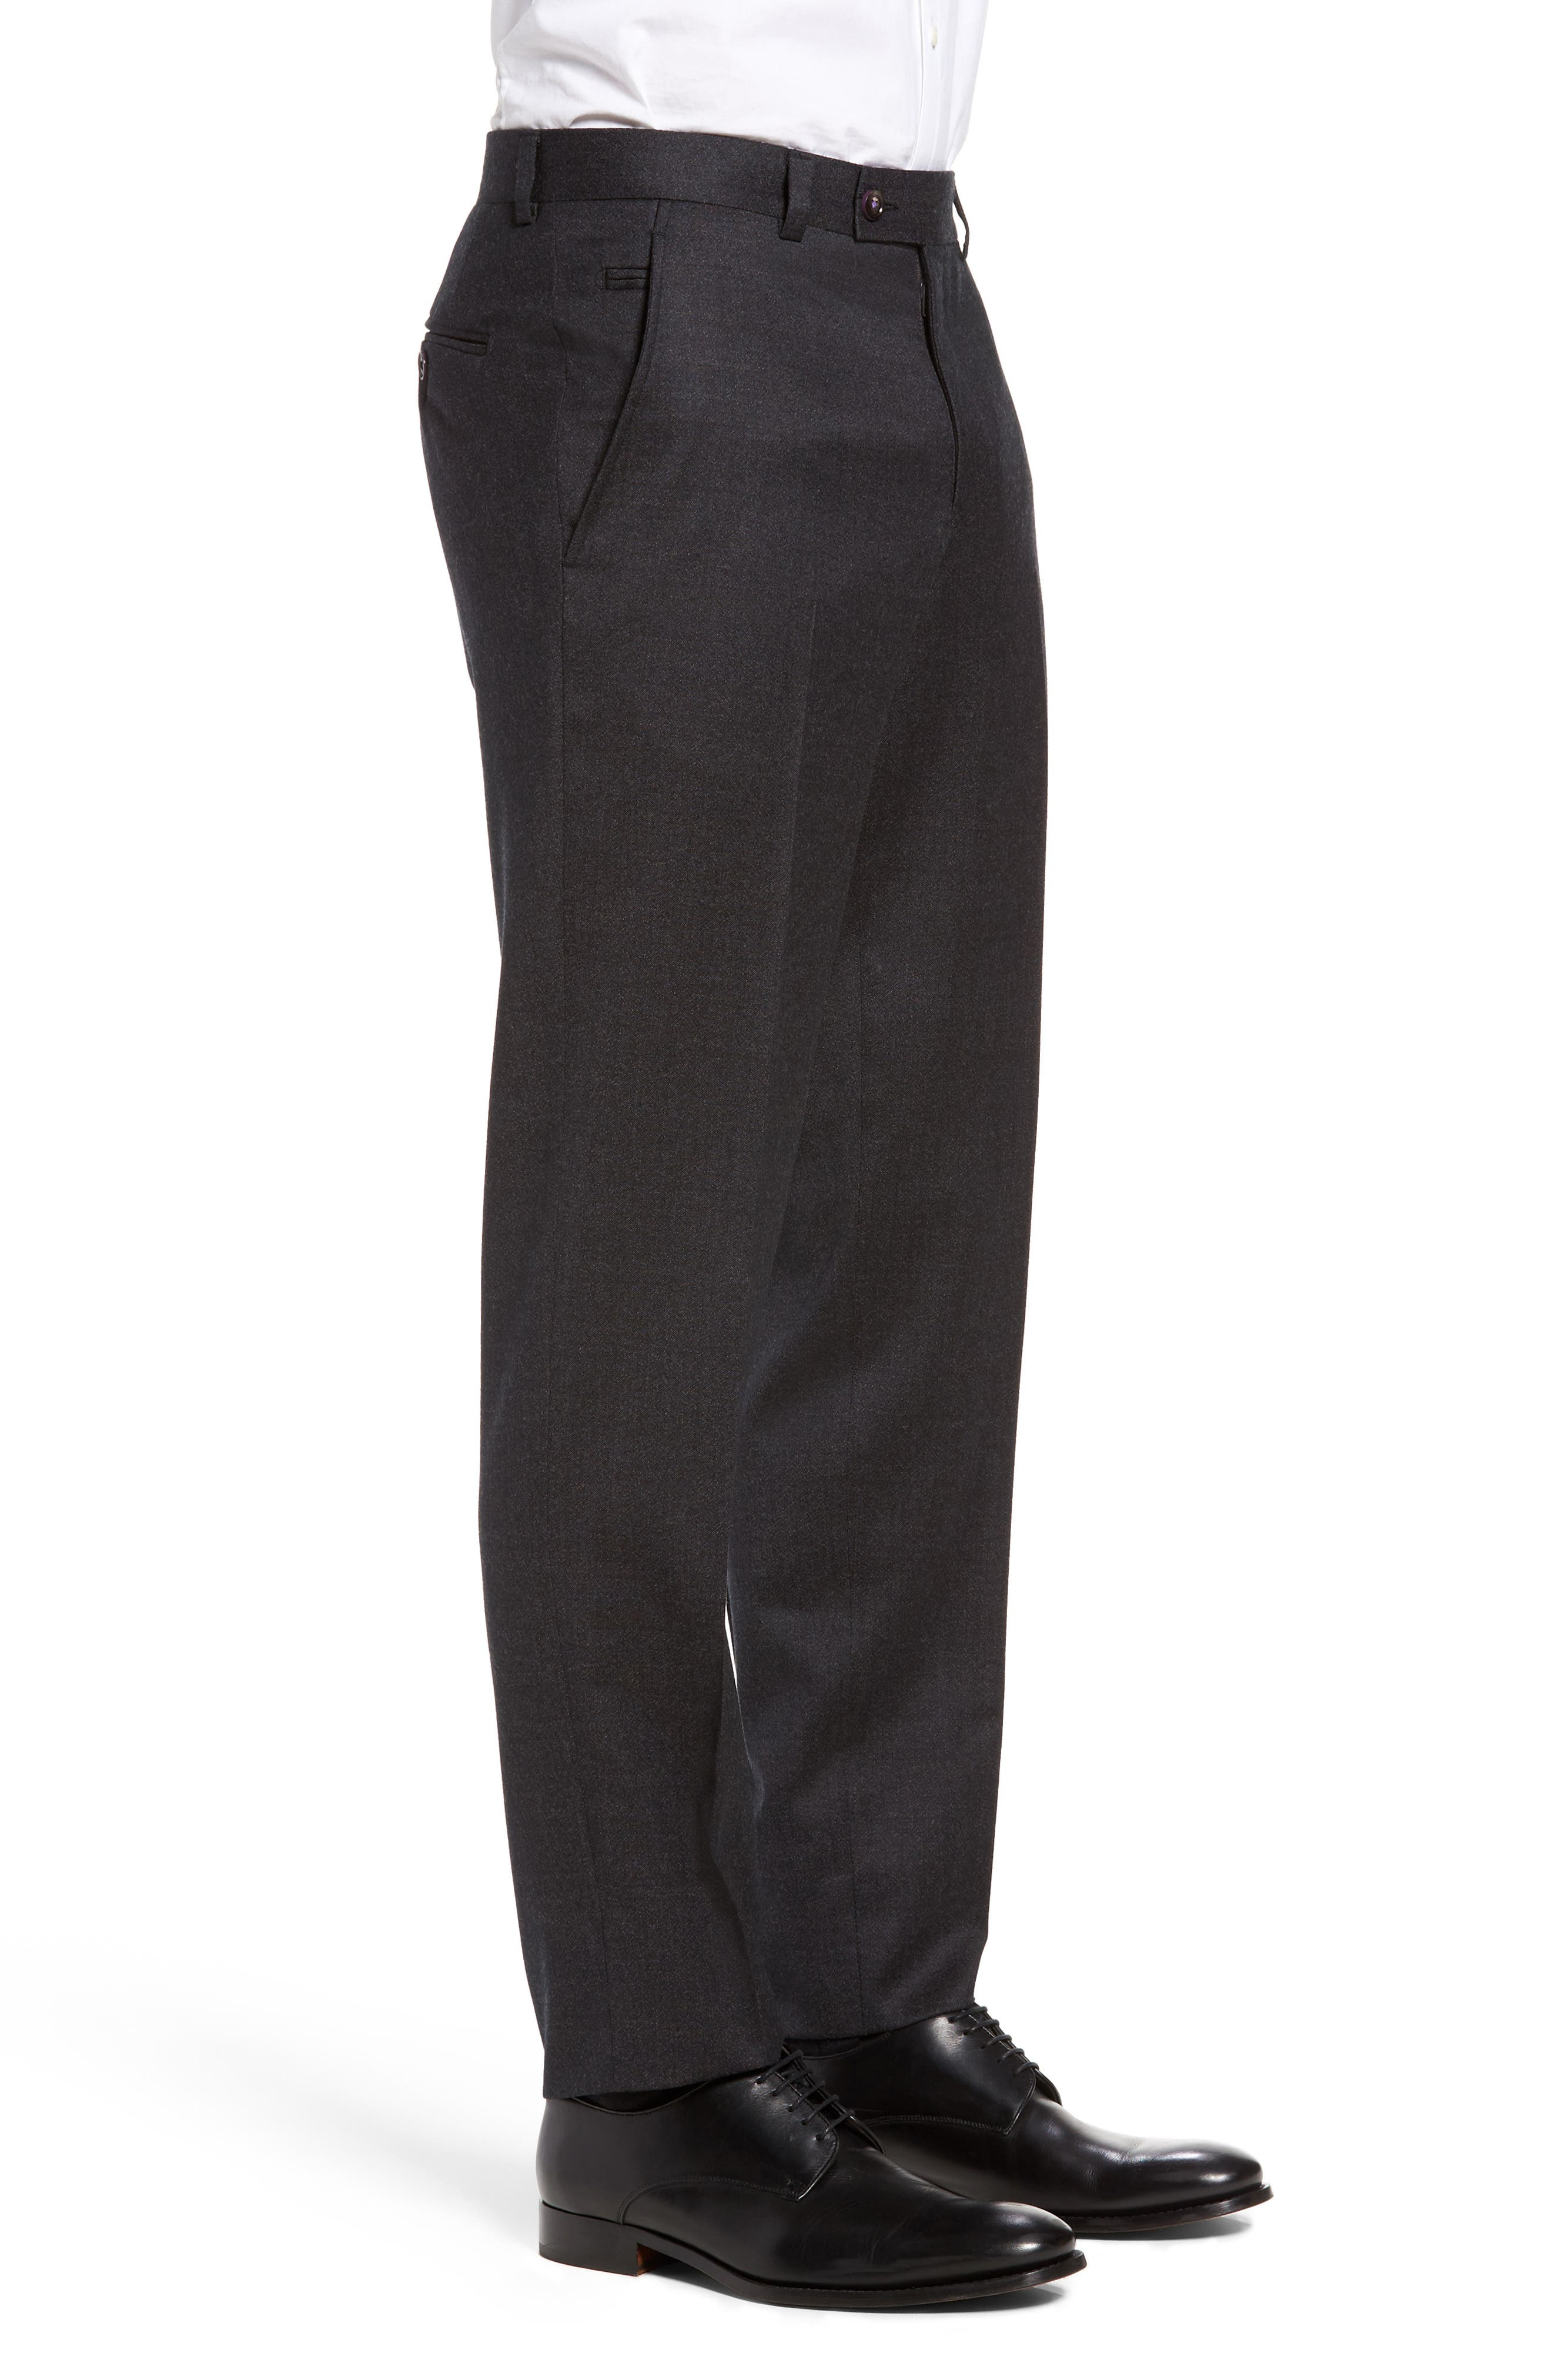 Jeremy Flat Front Solid Wool Trousers,                             Alternate thumbnail 4, color,                             050